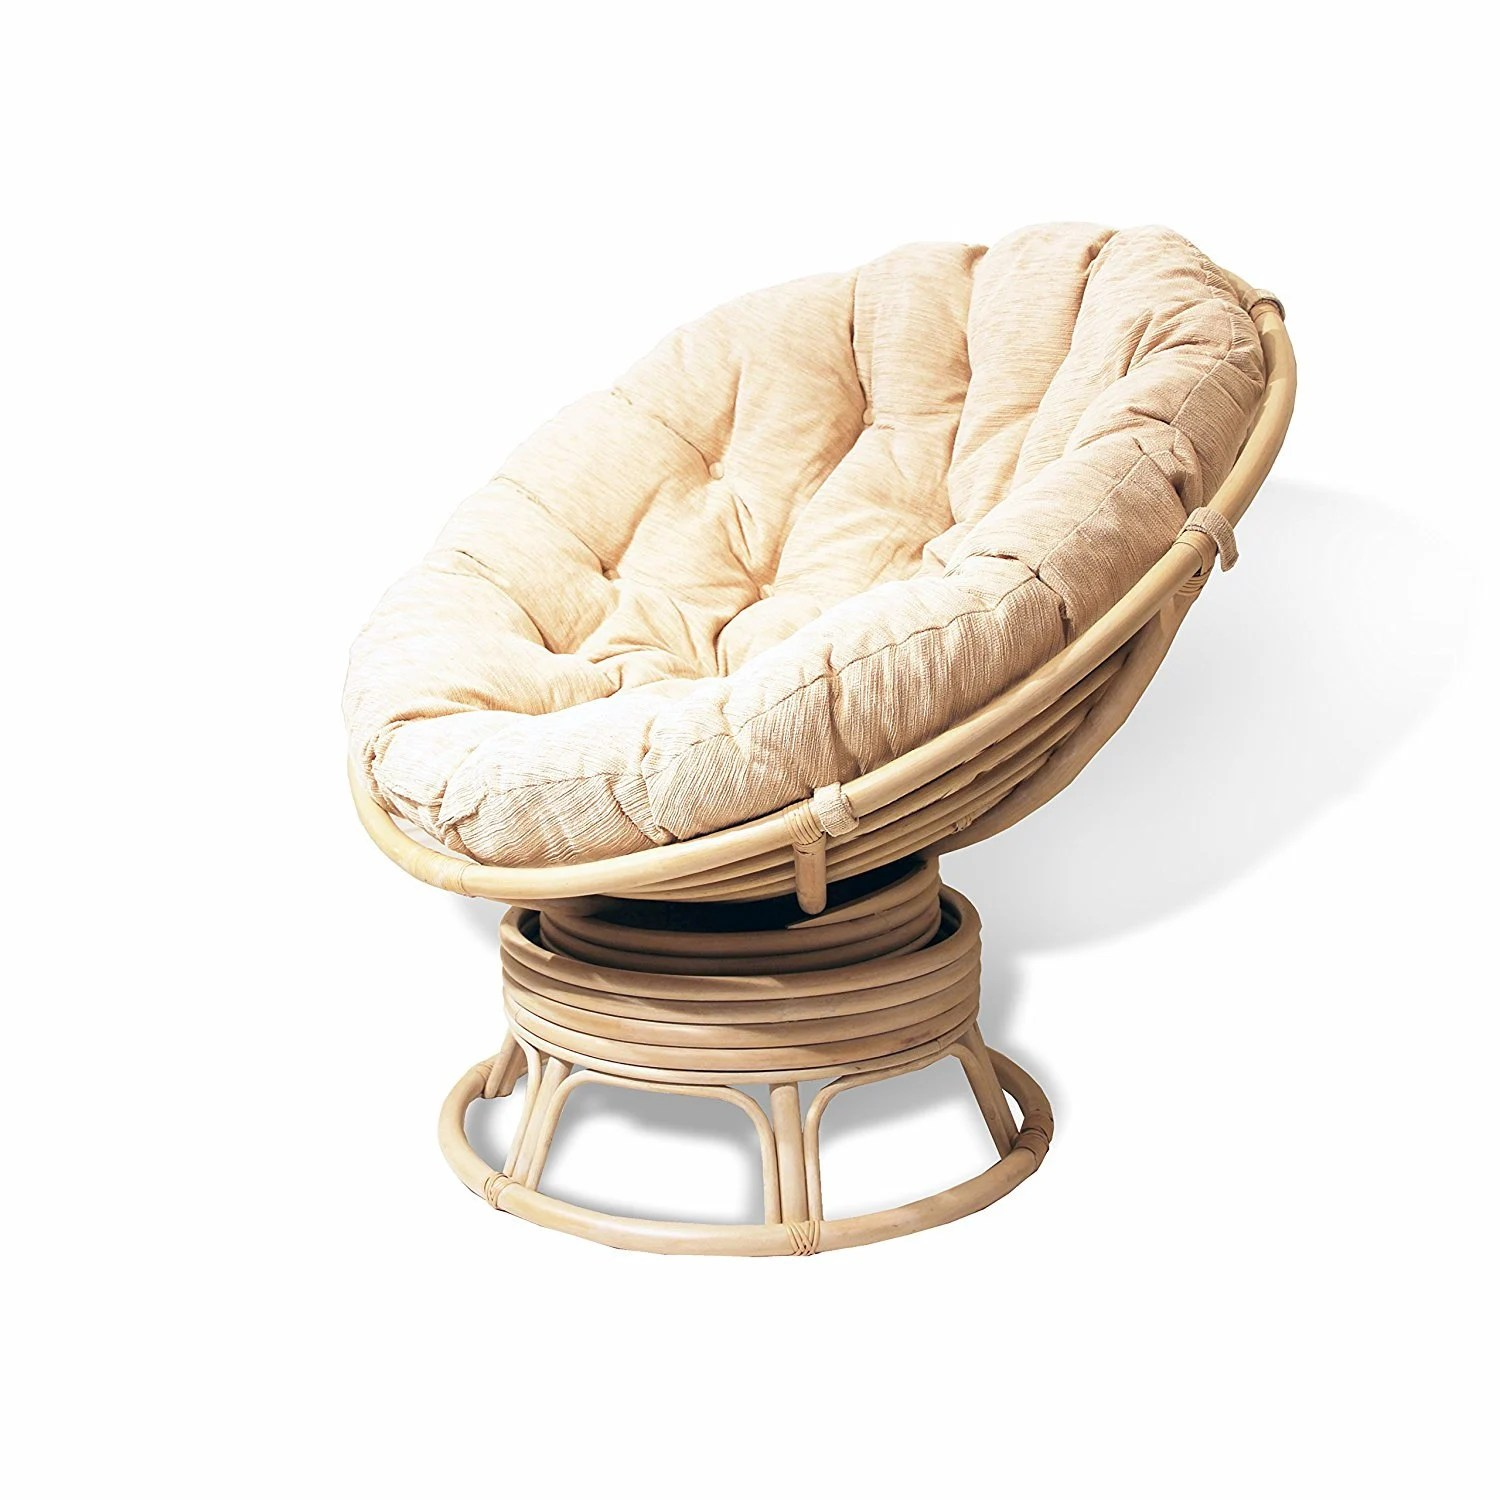 Wicker Swivel Chair Papasan Natural Rattan Wicker Swivel Rocking Round Chair With Cream Cushion White Wash